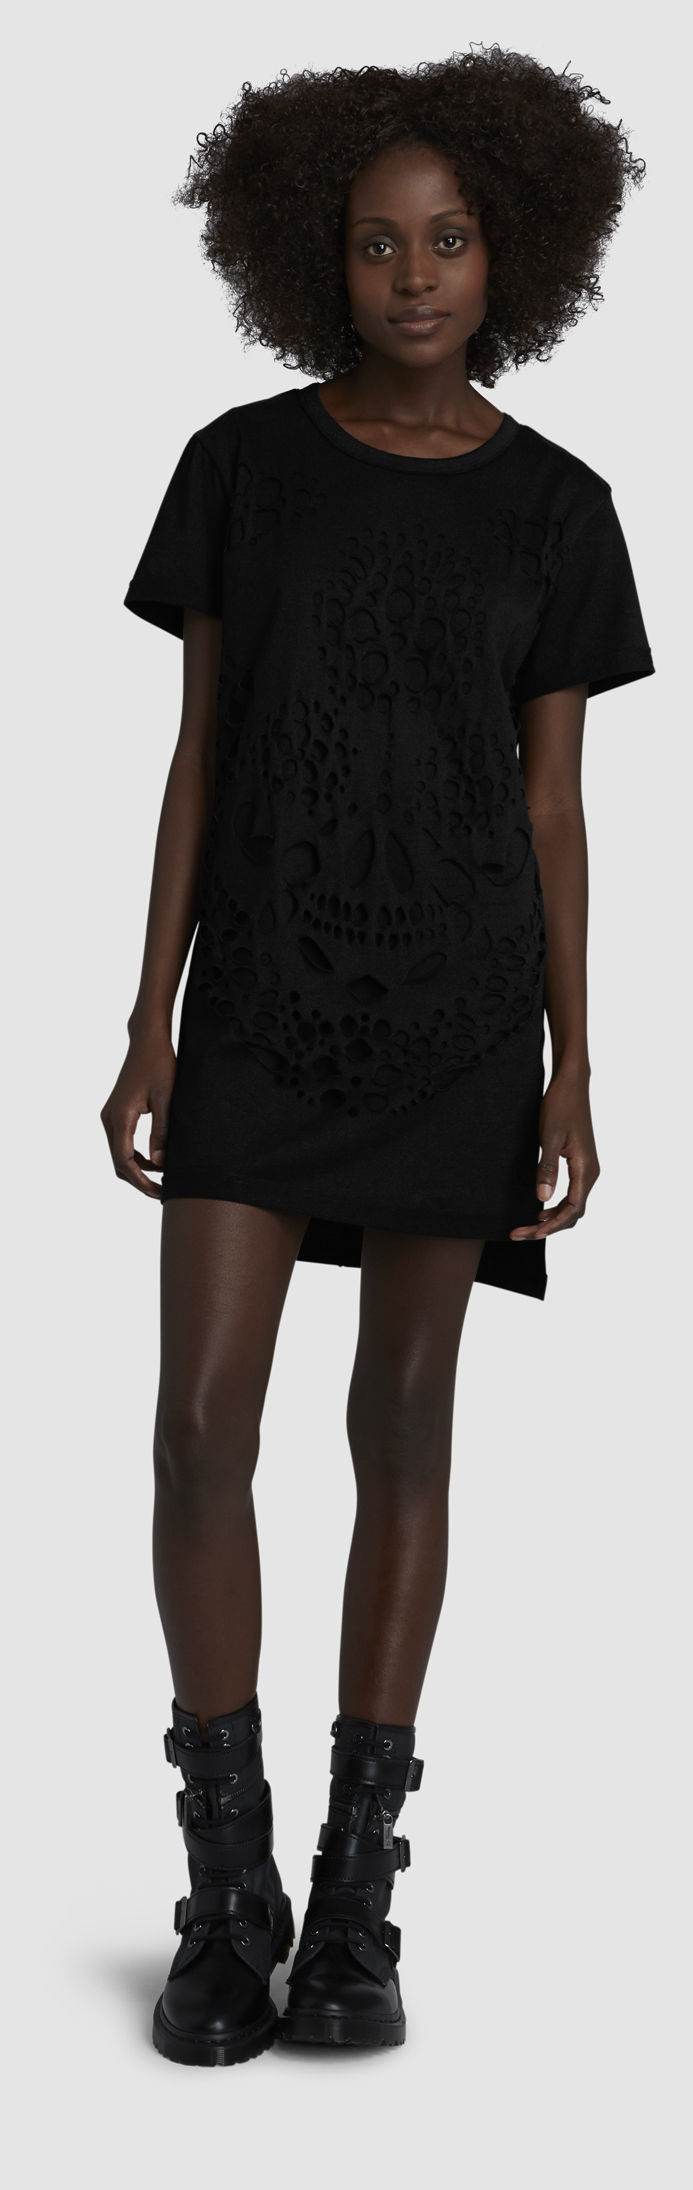 WOMEN'S SKULLS T-SHIRT DRESS